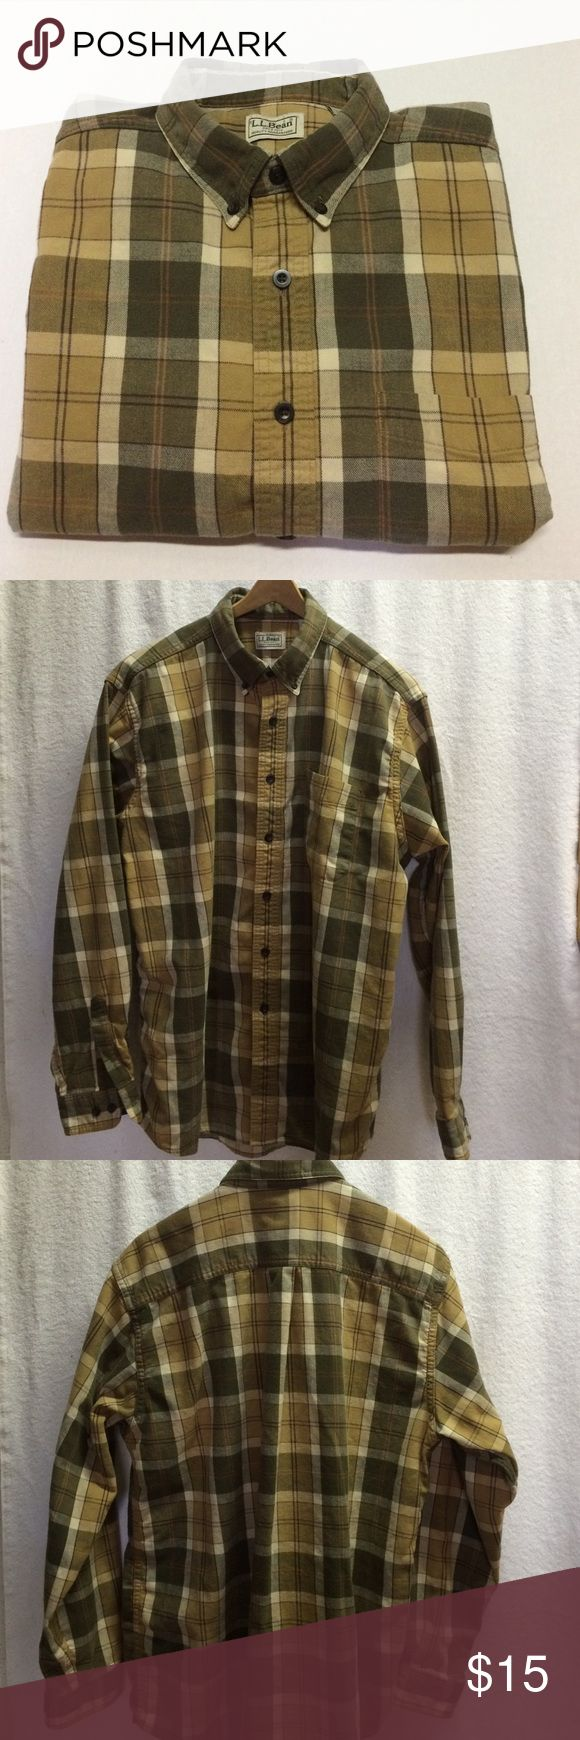 LL Bean - Men's Plaid Flannel, EUC This LL Bean Men's Plaid Flannel is in great used condition. Warm shades of tan and green are great for fall. Size large.  Button down collar. L.L. Bean Shirts Casual Button Down Shirts